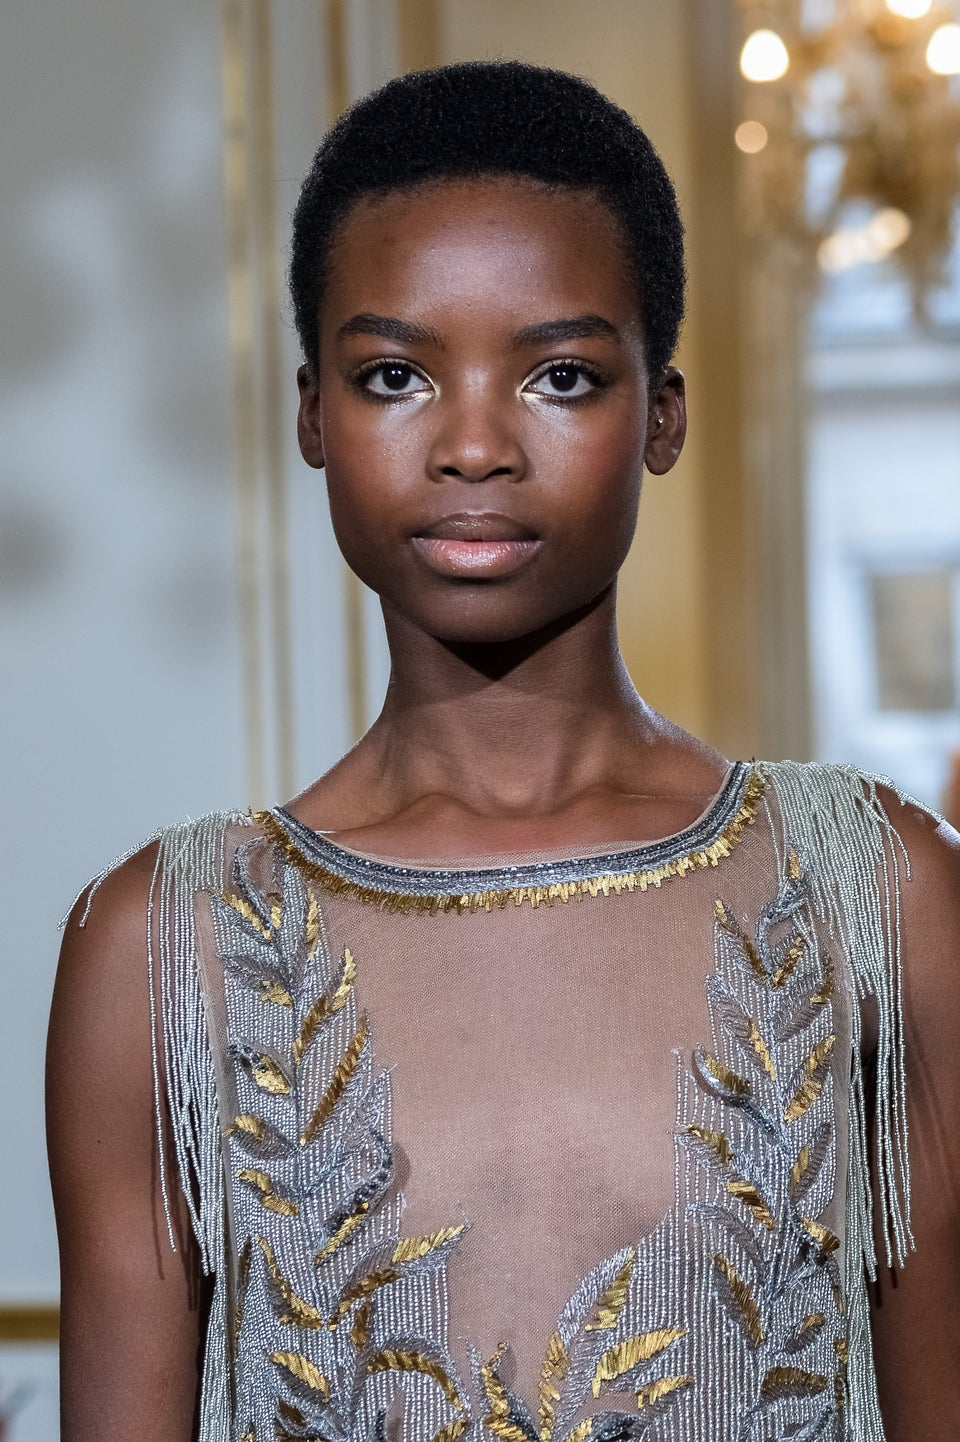 Maria Borges Is L'Oreal's Newest Face: 'I Believe in the Beauty of Diversity'